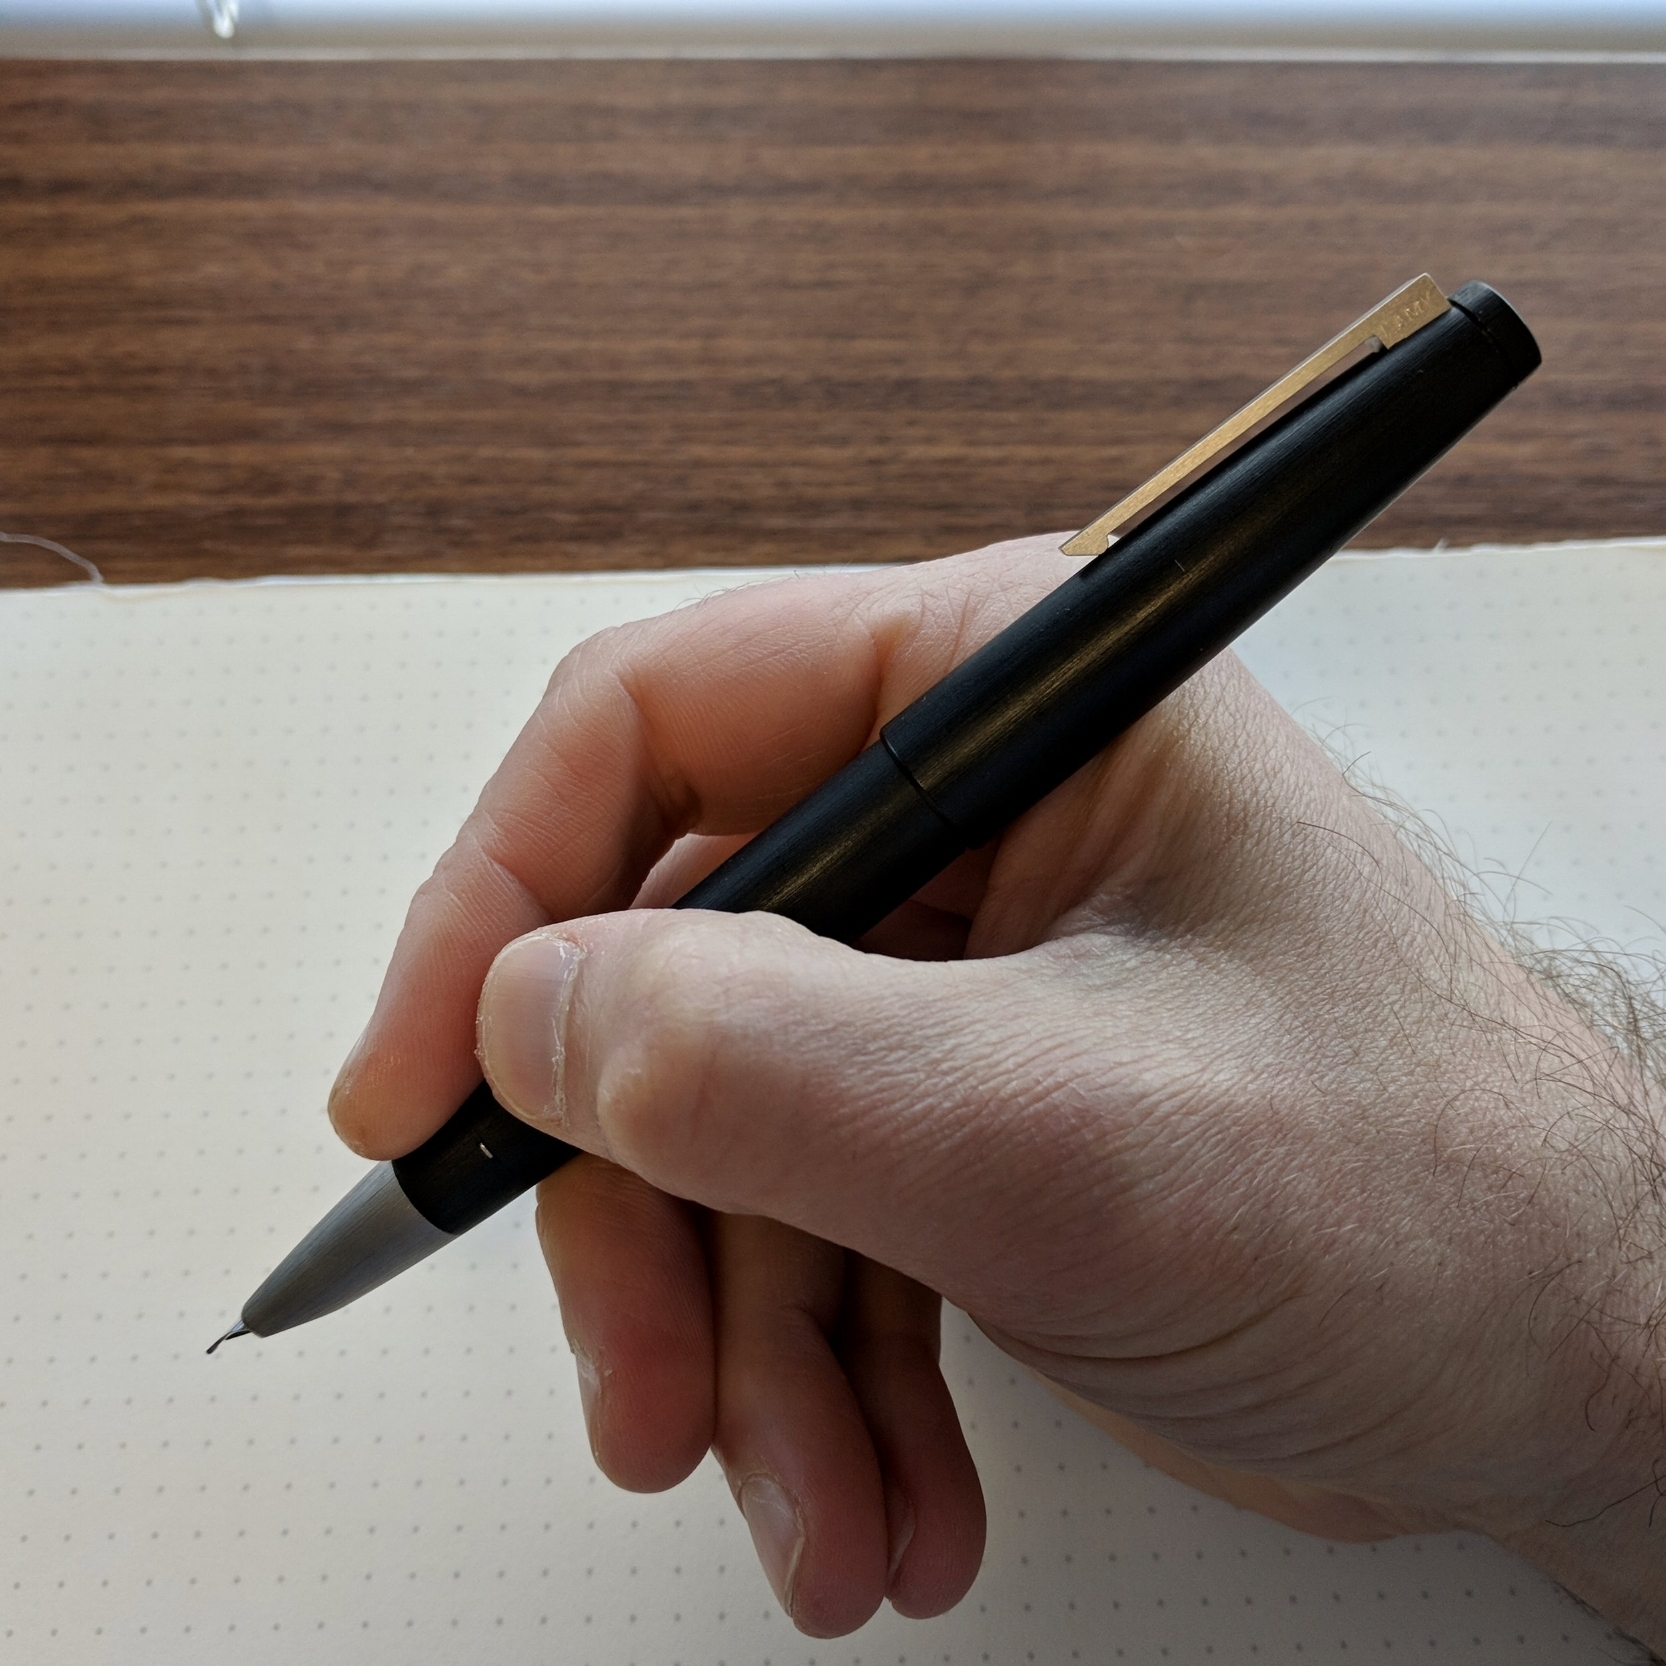 The Lamy 2000,  posted, is the perfect length for me.